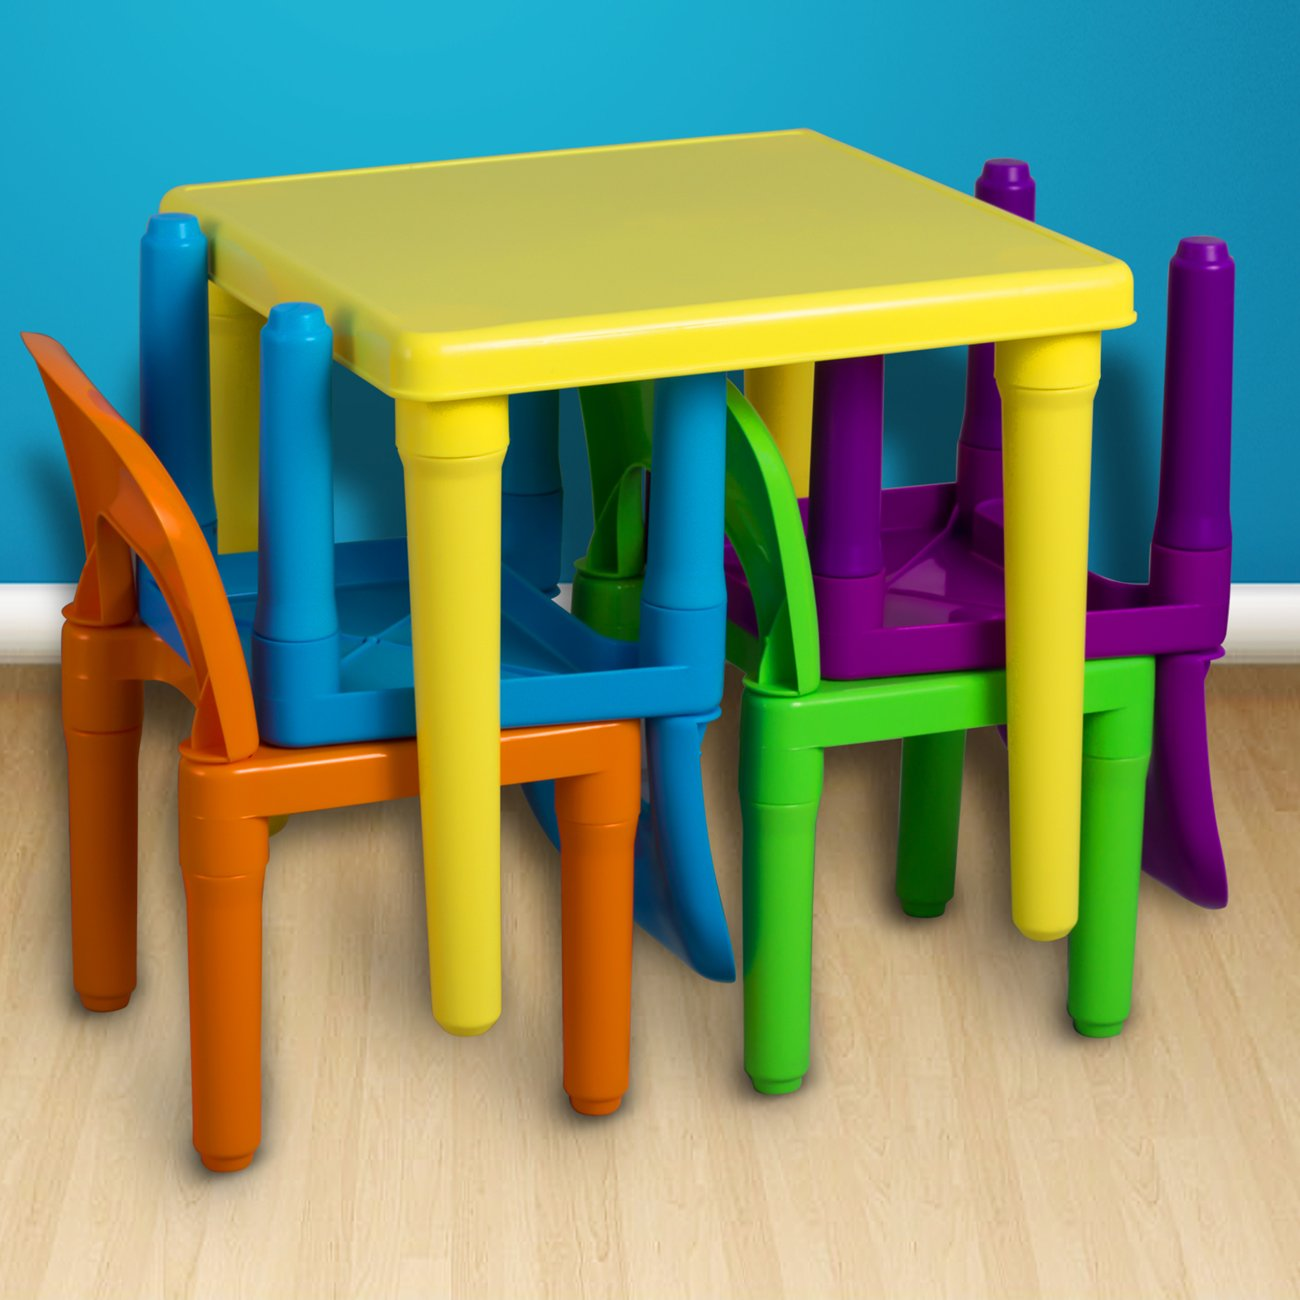 Amazon.com OxGord Kids Plastic Table and Chairs Set - Multi Colored Children Activity Table and Chairs for Playroom (Includes 1 Table and 4 Chairs) Baby & Amazon.com: OxGord Kids Plastic Table and Chairs Set - Multi Colored ...